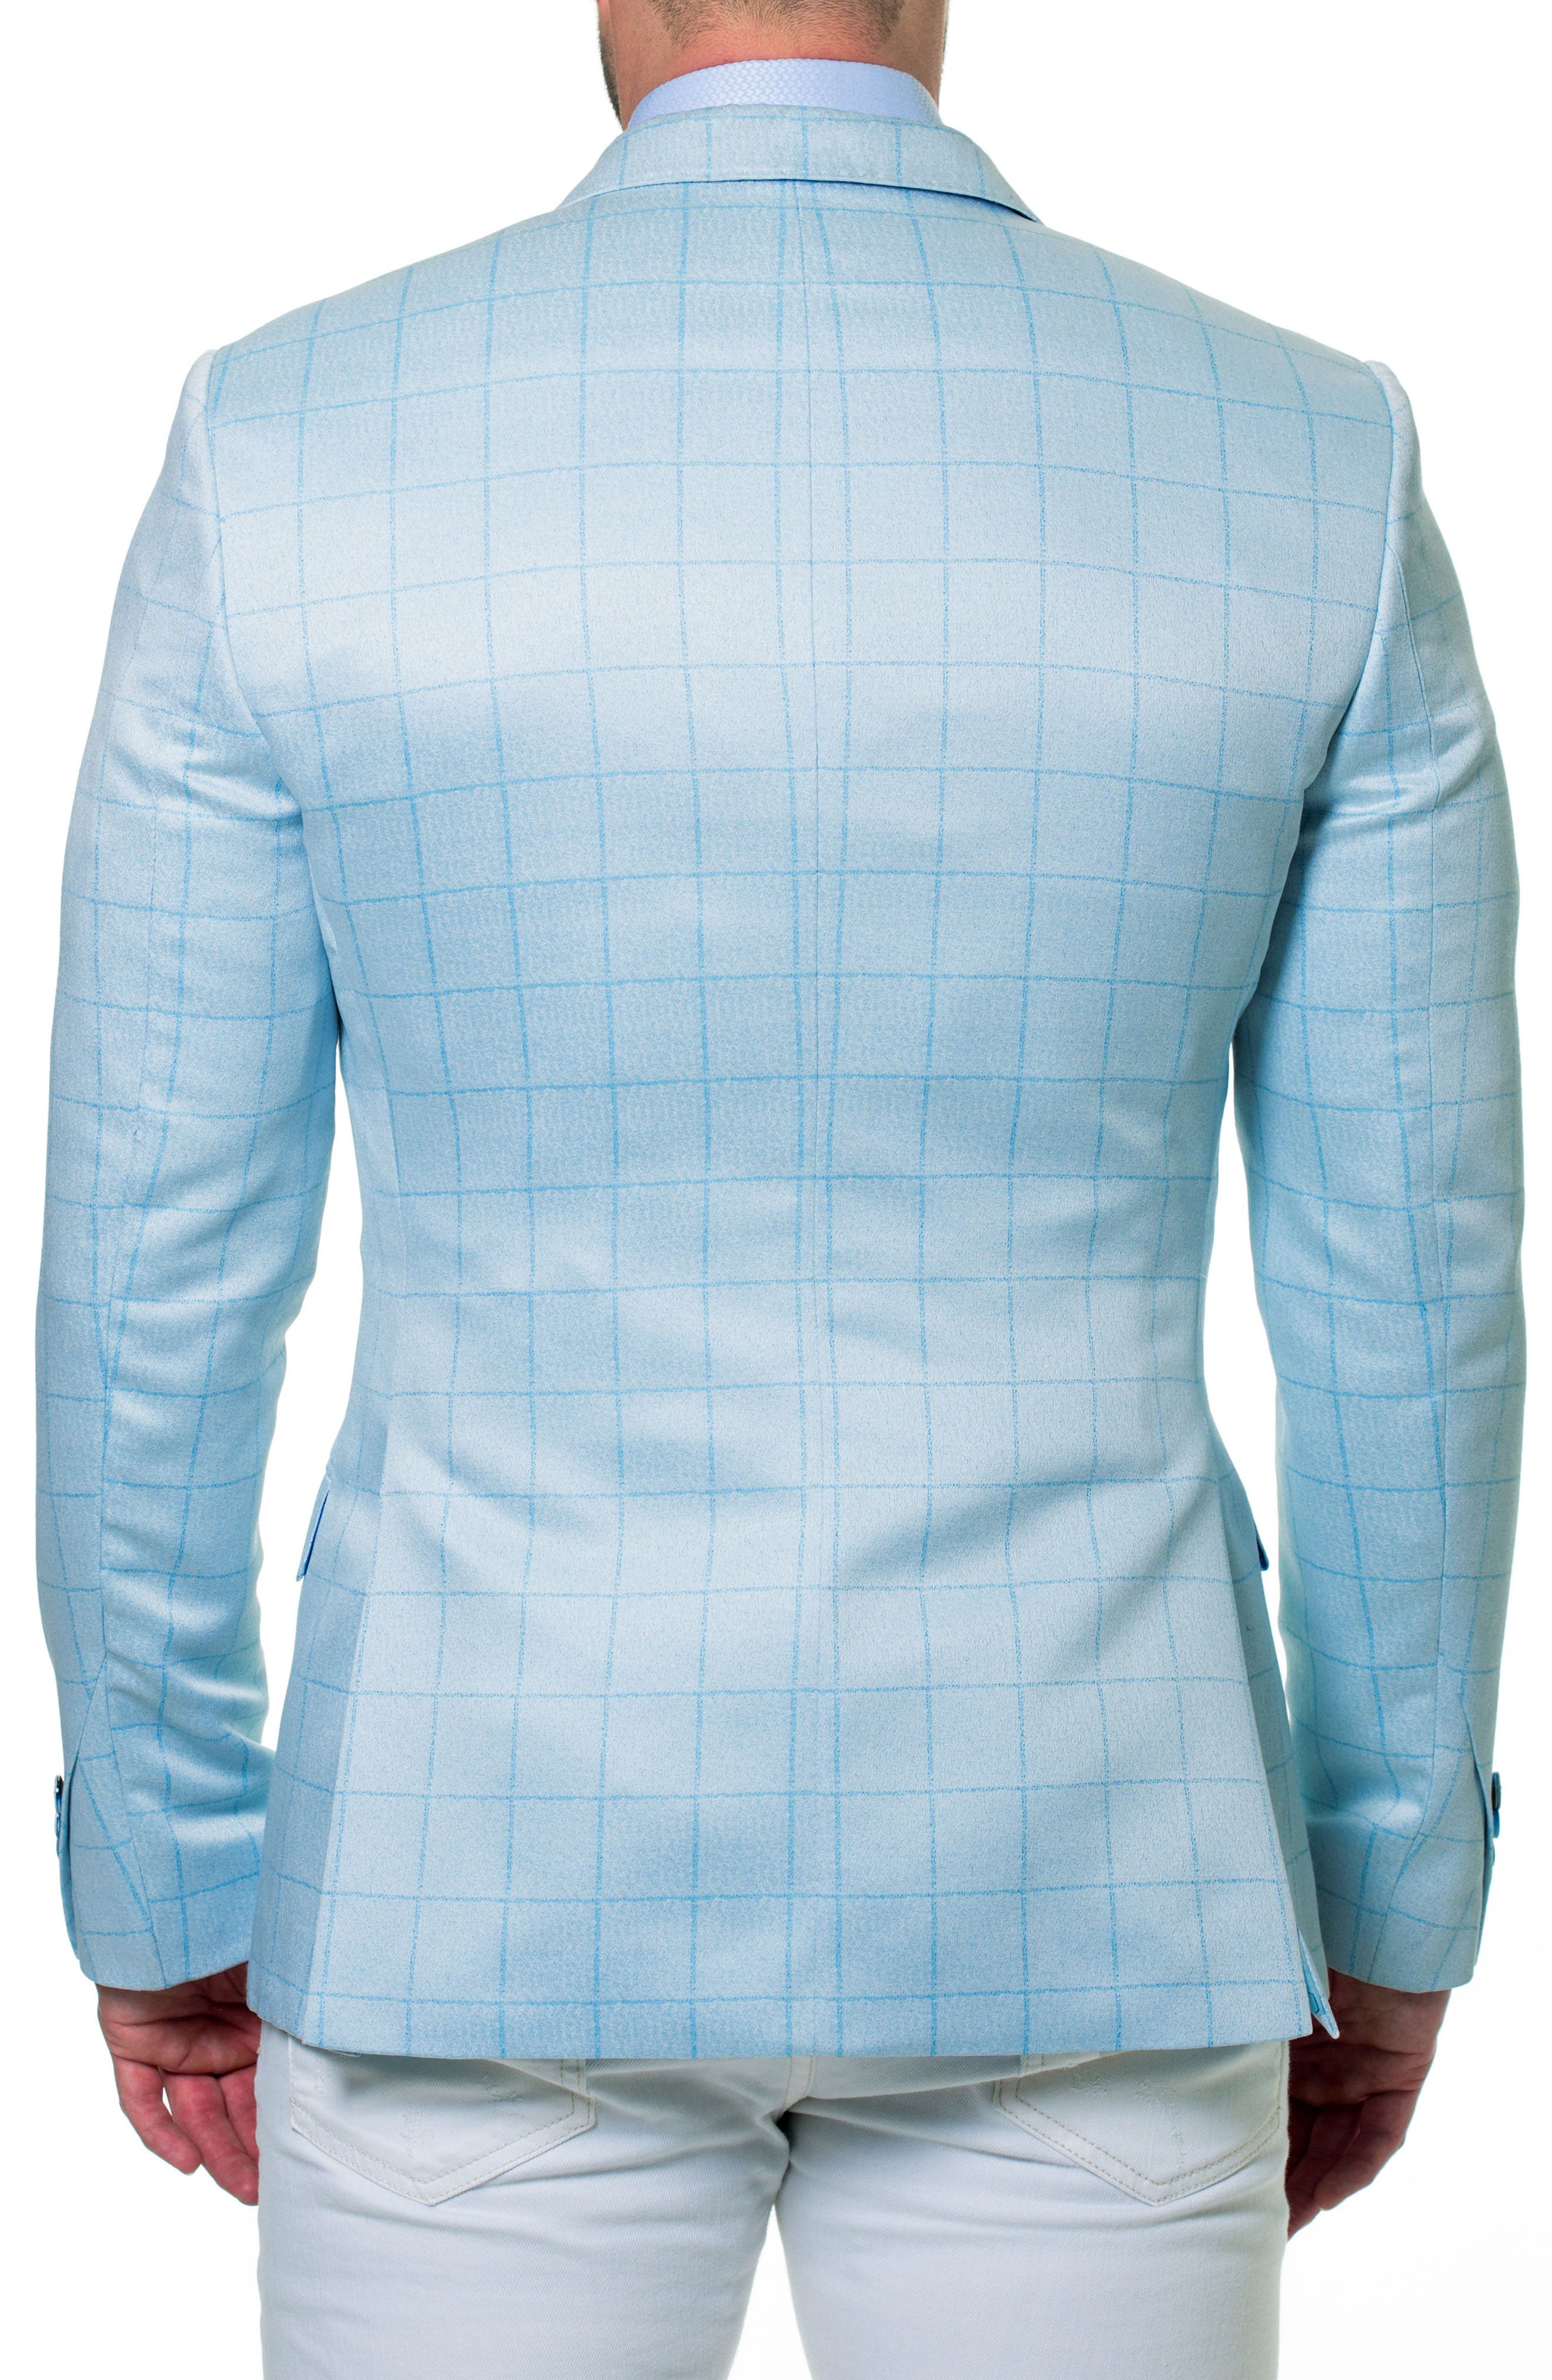 Elegance Check Windowpane Sport Coat,                             Alternate thumbnail 3, color,                             Blue